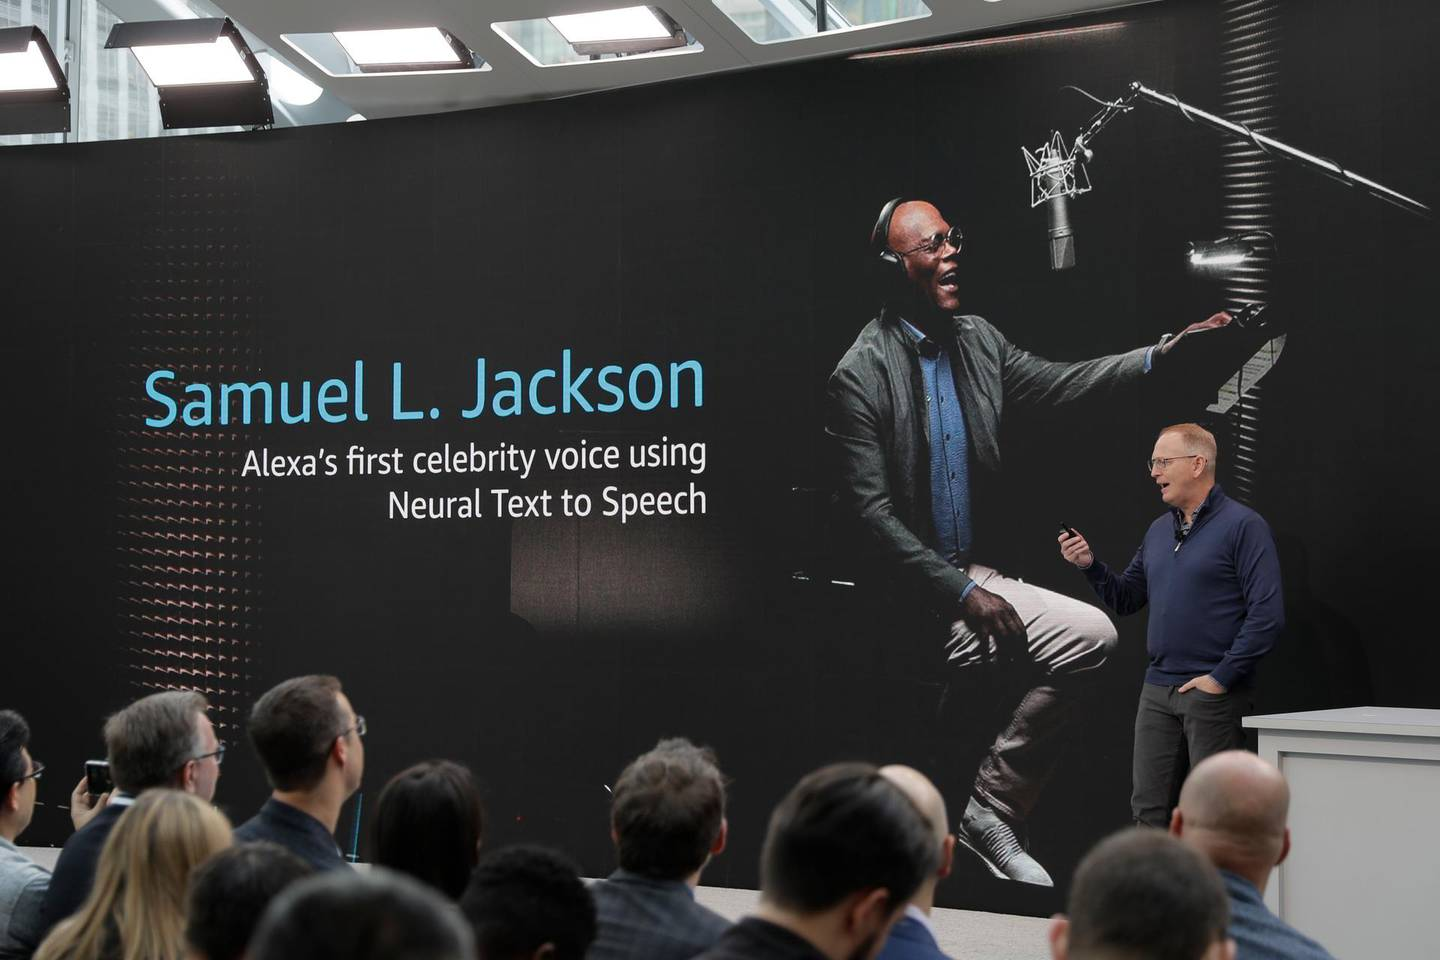 Dave Limp, senior vice president for Amazon devices & services, talks about new celebrity voices, including actor Samuel L. Jackson, that will be made available on the tech company's Alexa devices, Wednesday, Sept. 25, 2019, during an event in Seattle. (AP Photo/Ted S. Warren)